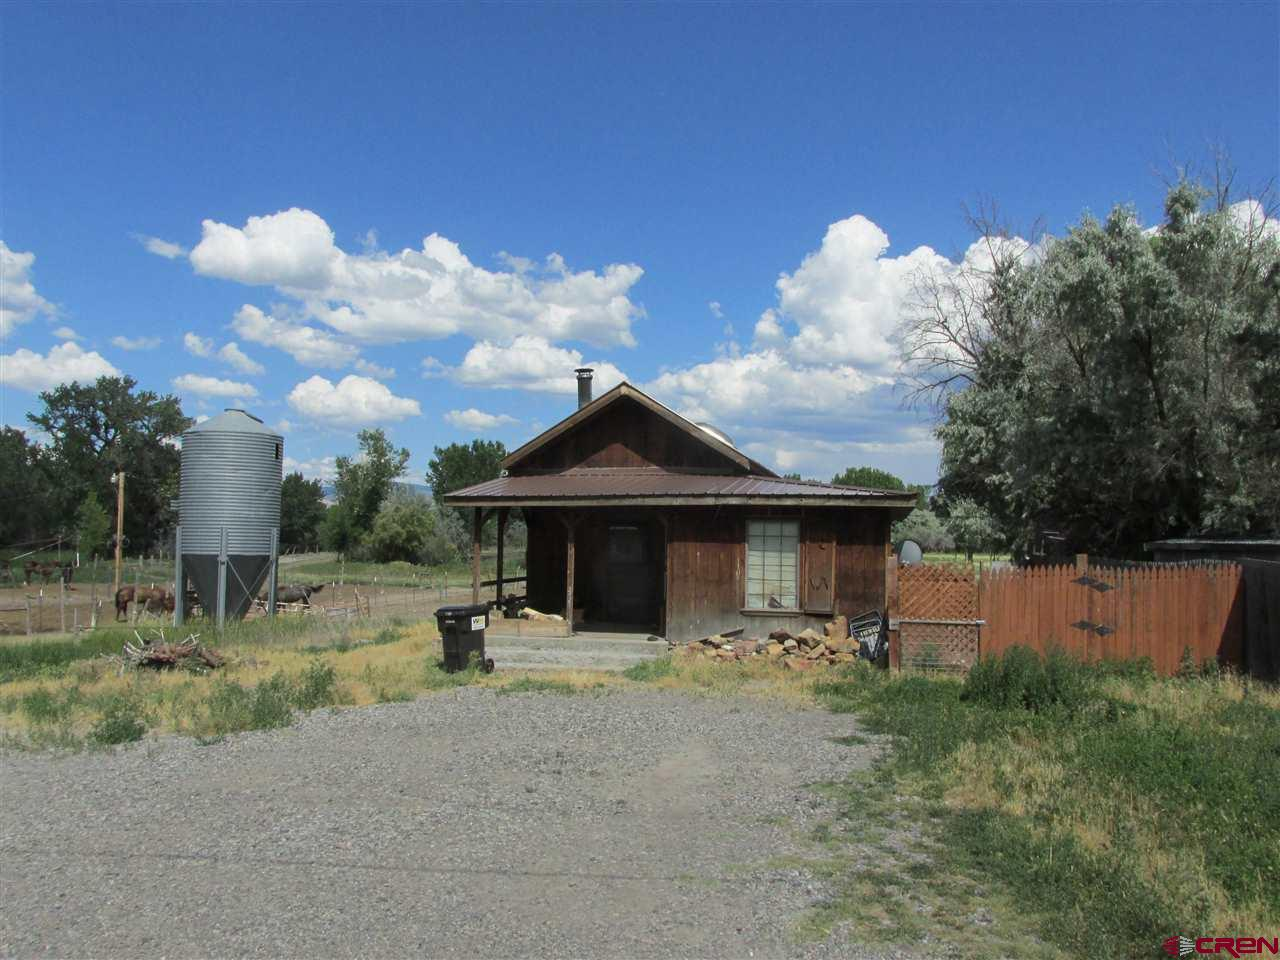 Superior Investment Property! 16.81 acres (MOL) zoned B-4 and R-3 within the City of Montrose and next to the new Colorado Outdoors 164-acre multi-use river development. Sizeable acreage for commercial and/or residential development. Property has 696 sq.ft. 1bd/1ba home, pasture, ponds and horse stalls that are currently leased. Property also has irrigation rights. Beautiful acreage and nature views. The possibilities are endless with this land! There is an estimated 2021 split fee of $500 for UVWUA for this property.